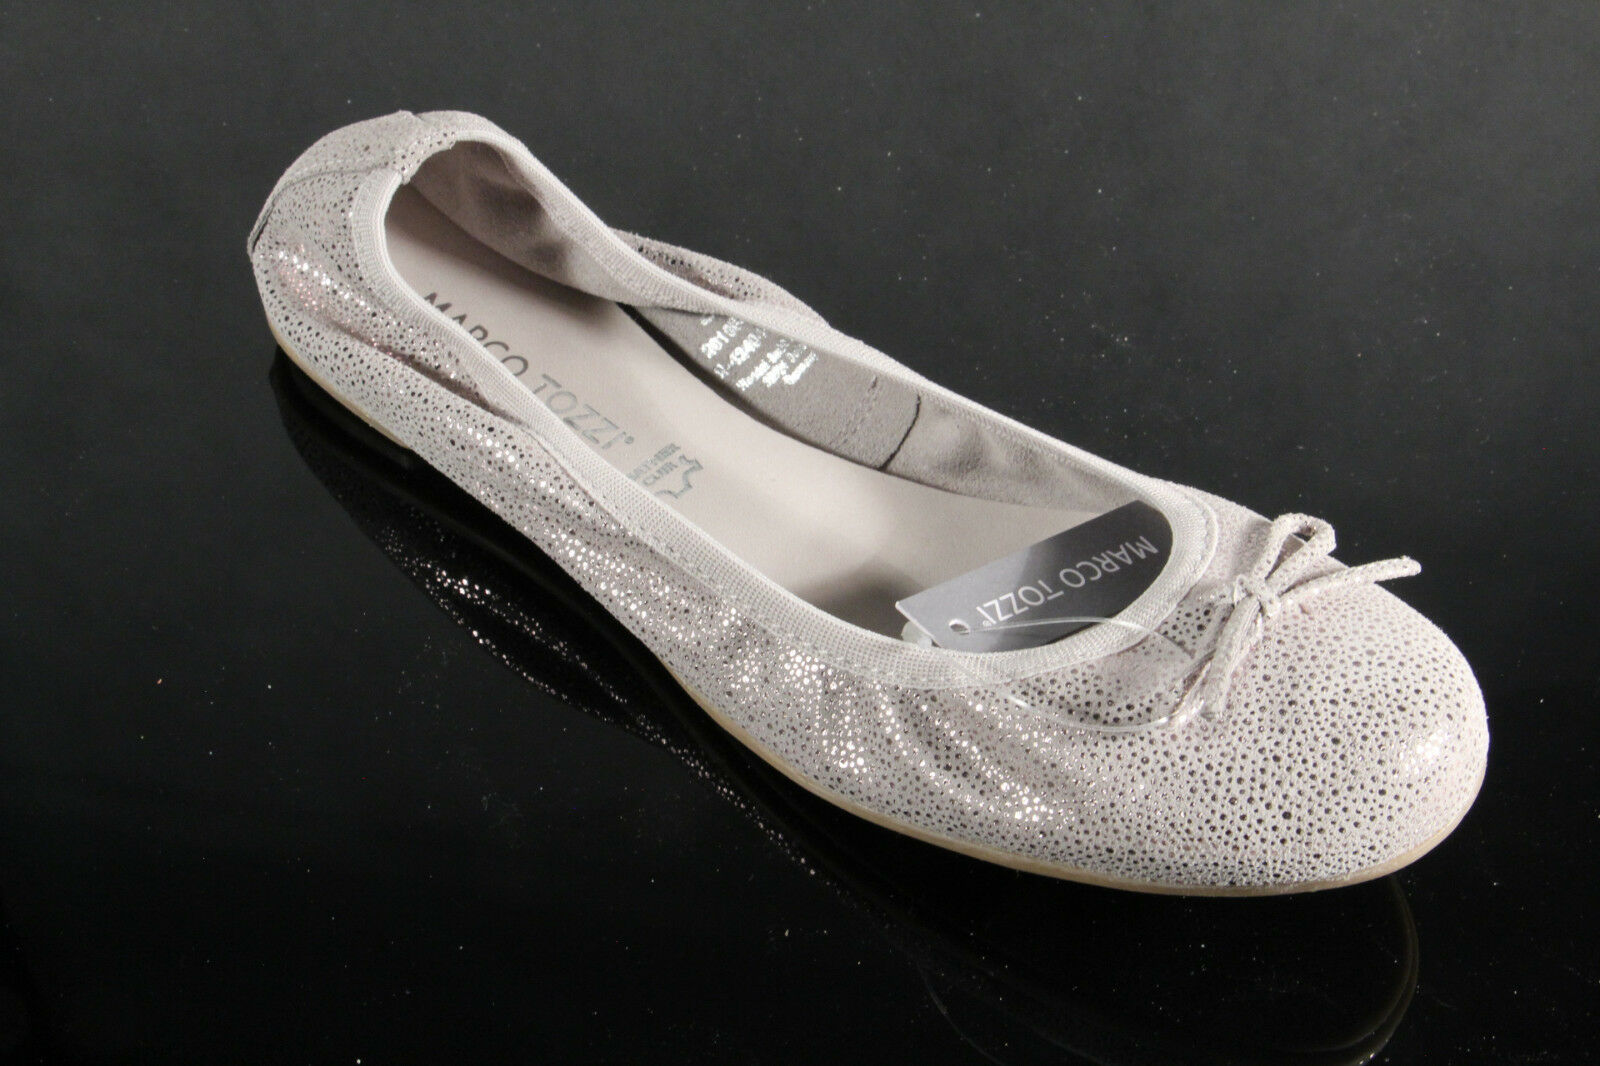 Marco Tozzi Ballerinas Slipper shoes Court Court Court shoes Grey Silver Real Leather New 629c10